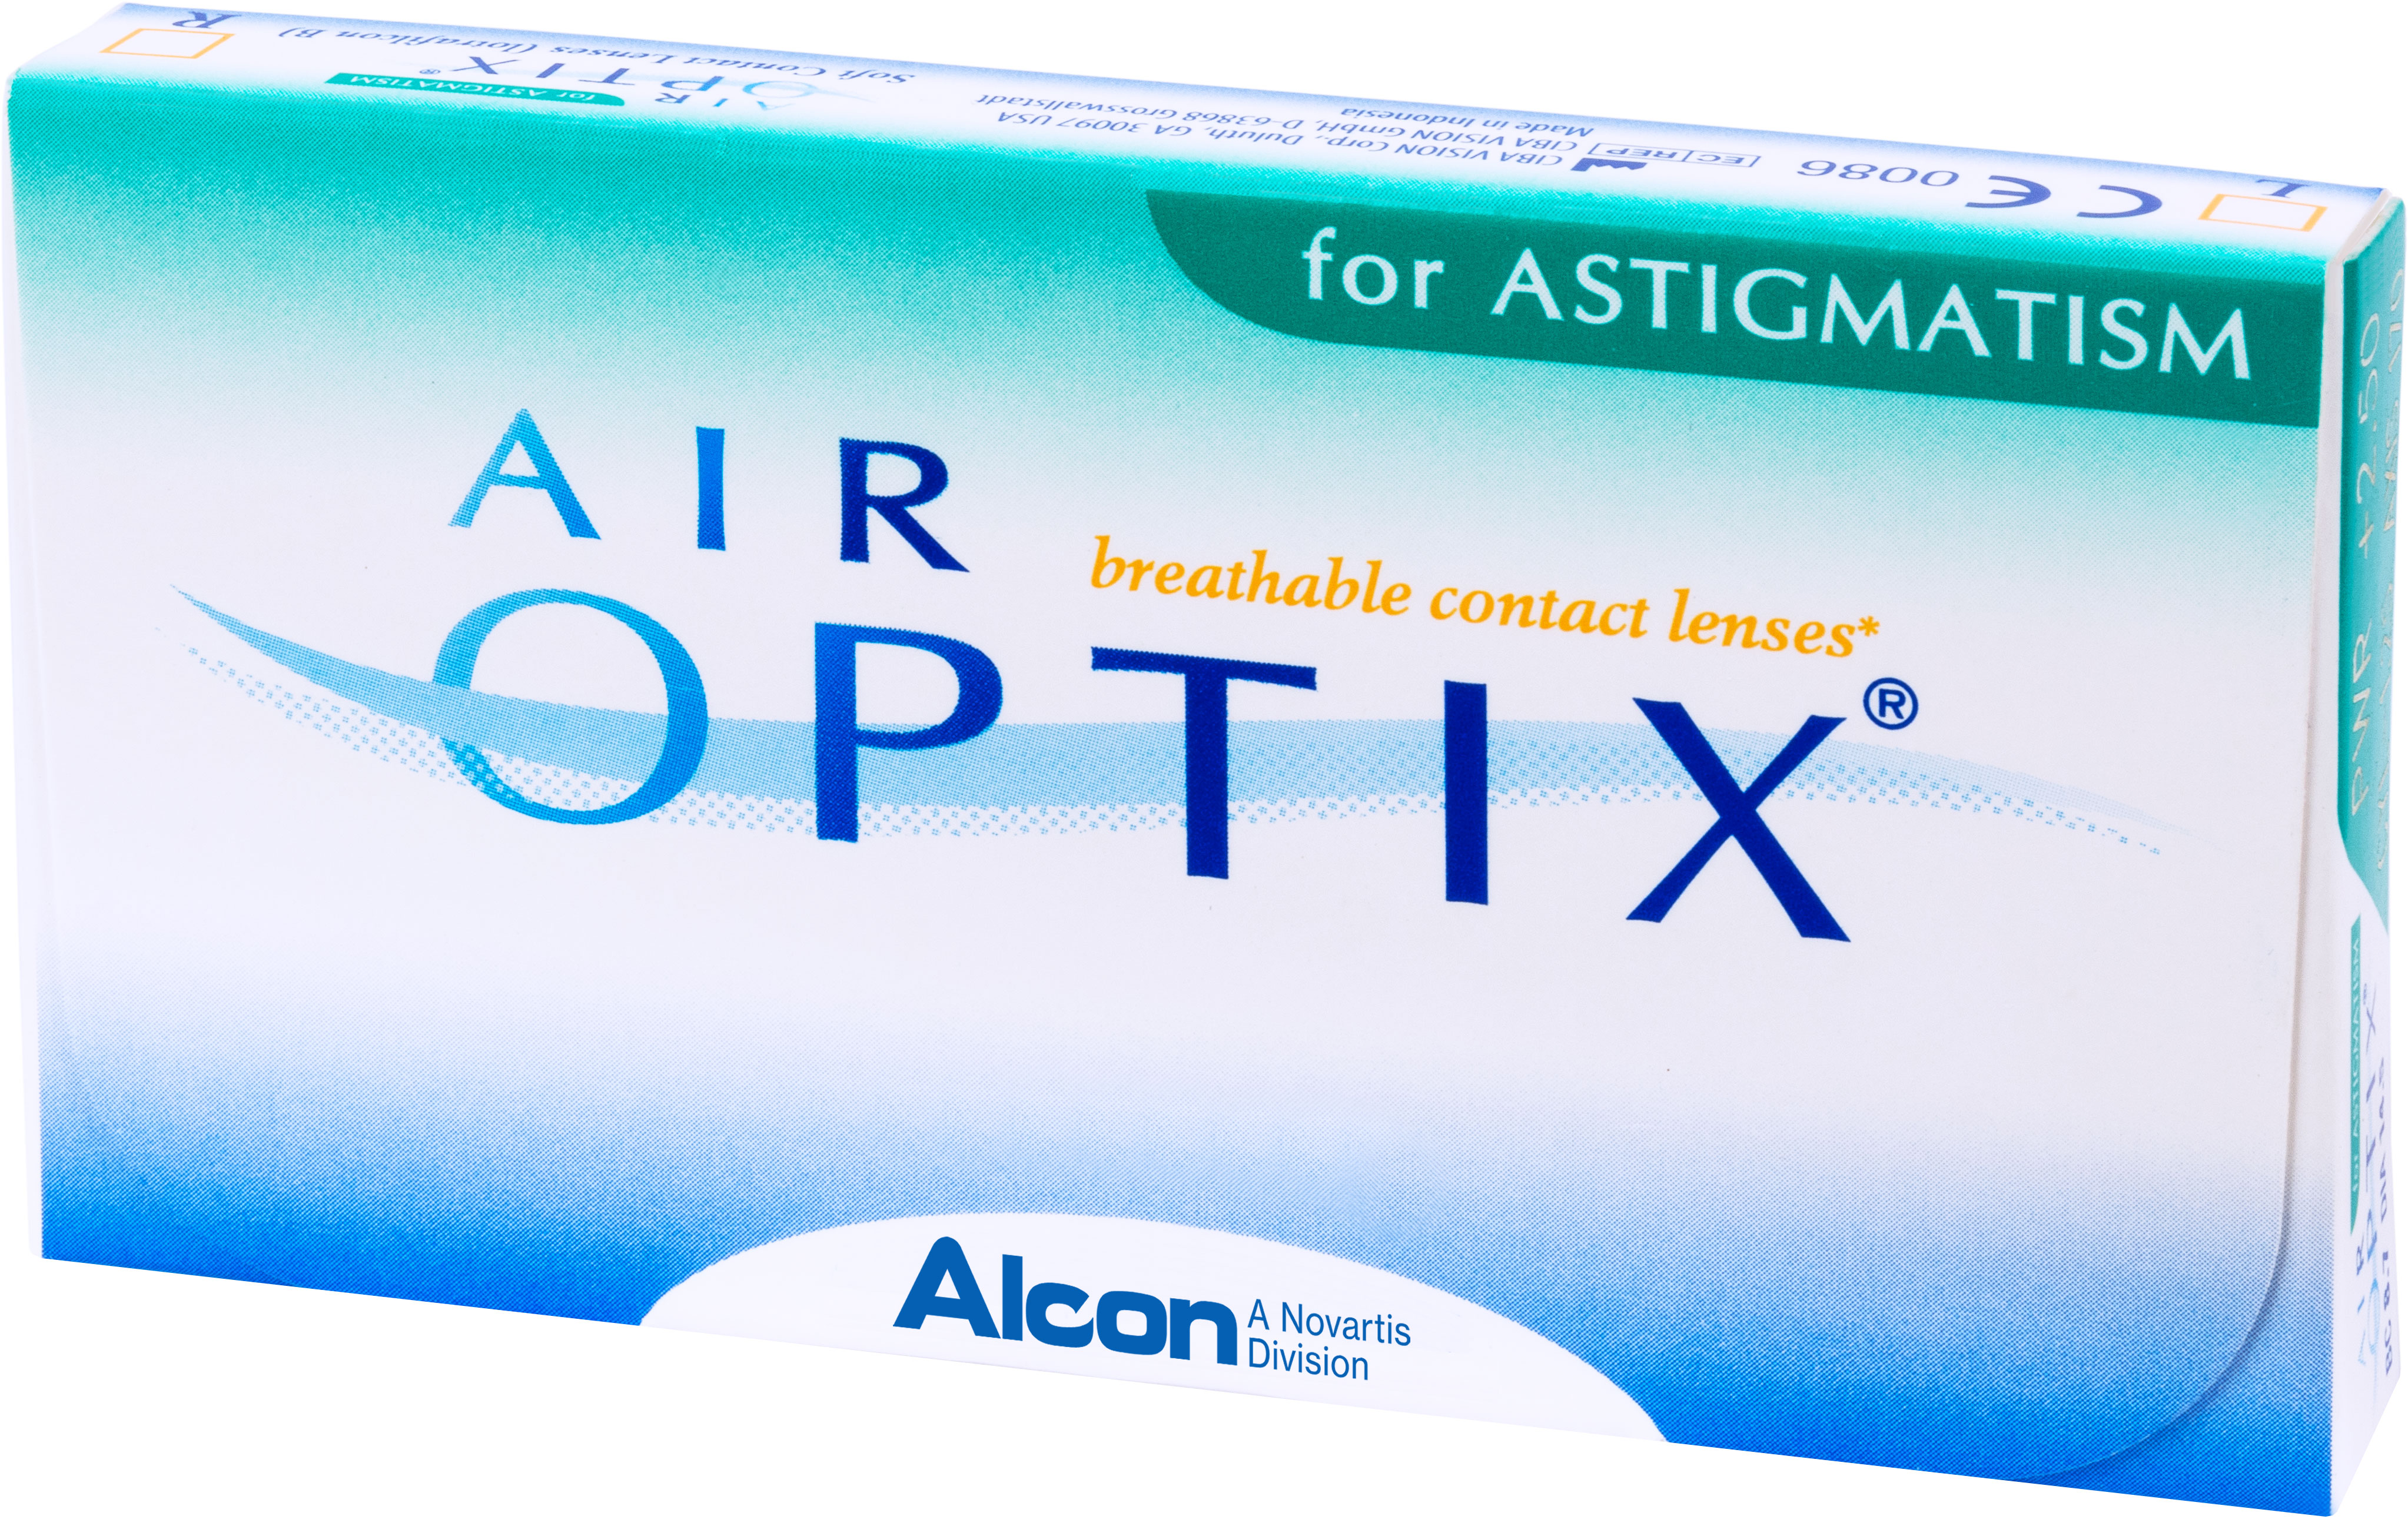 Аlcon контактные линзы Air Optix for Astigmatism 3pk /BC 8.7/DIA14.5/PWR -4.25/CYL -2.25/AXIS 130100022118with Hydraclear